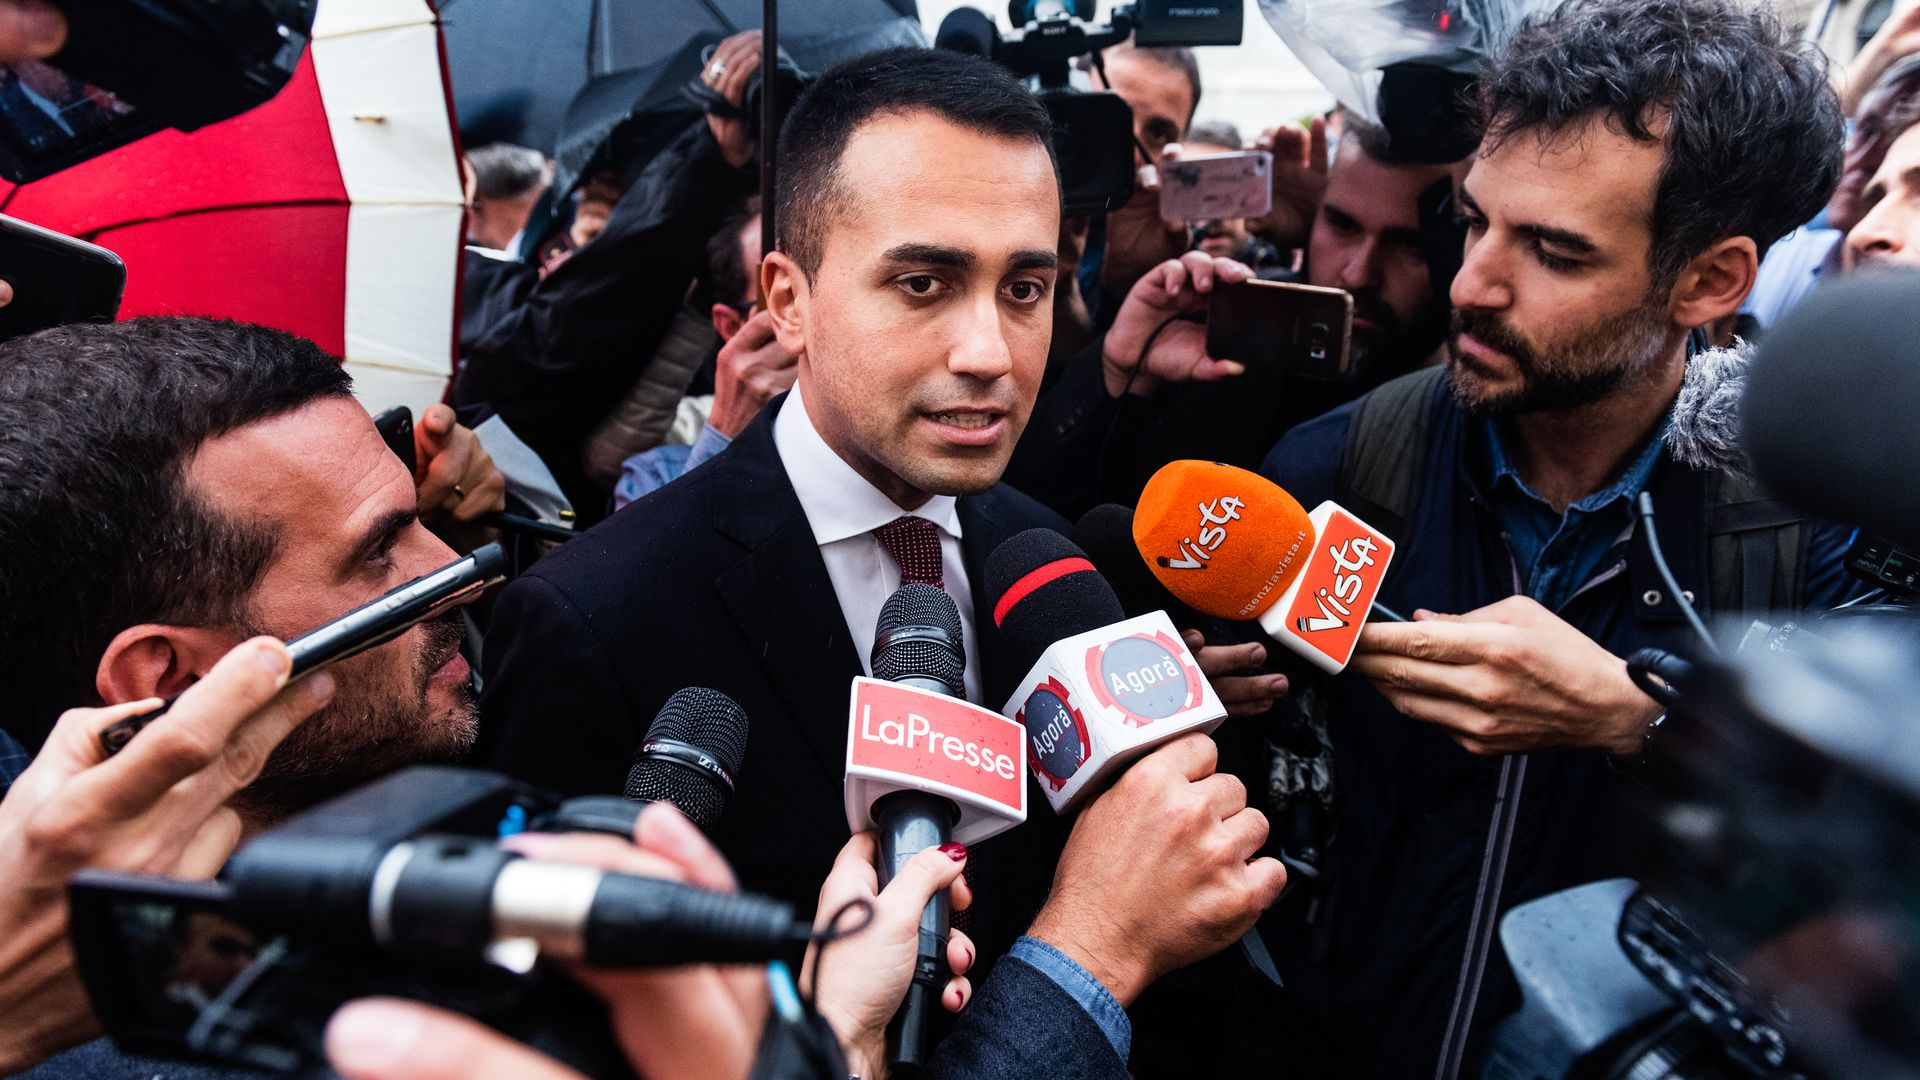 Five Star Movement leader Luigi Di Maio talks with the press after speaking with Presdent Matarella